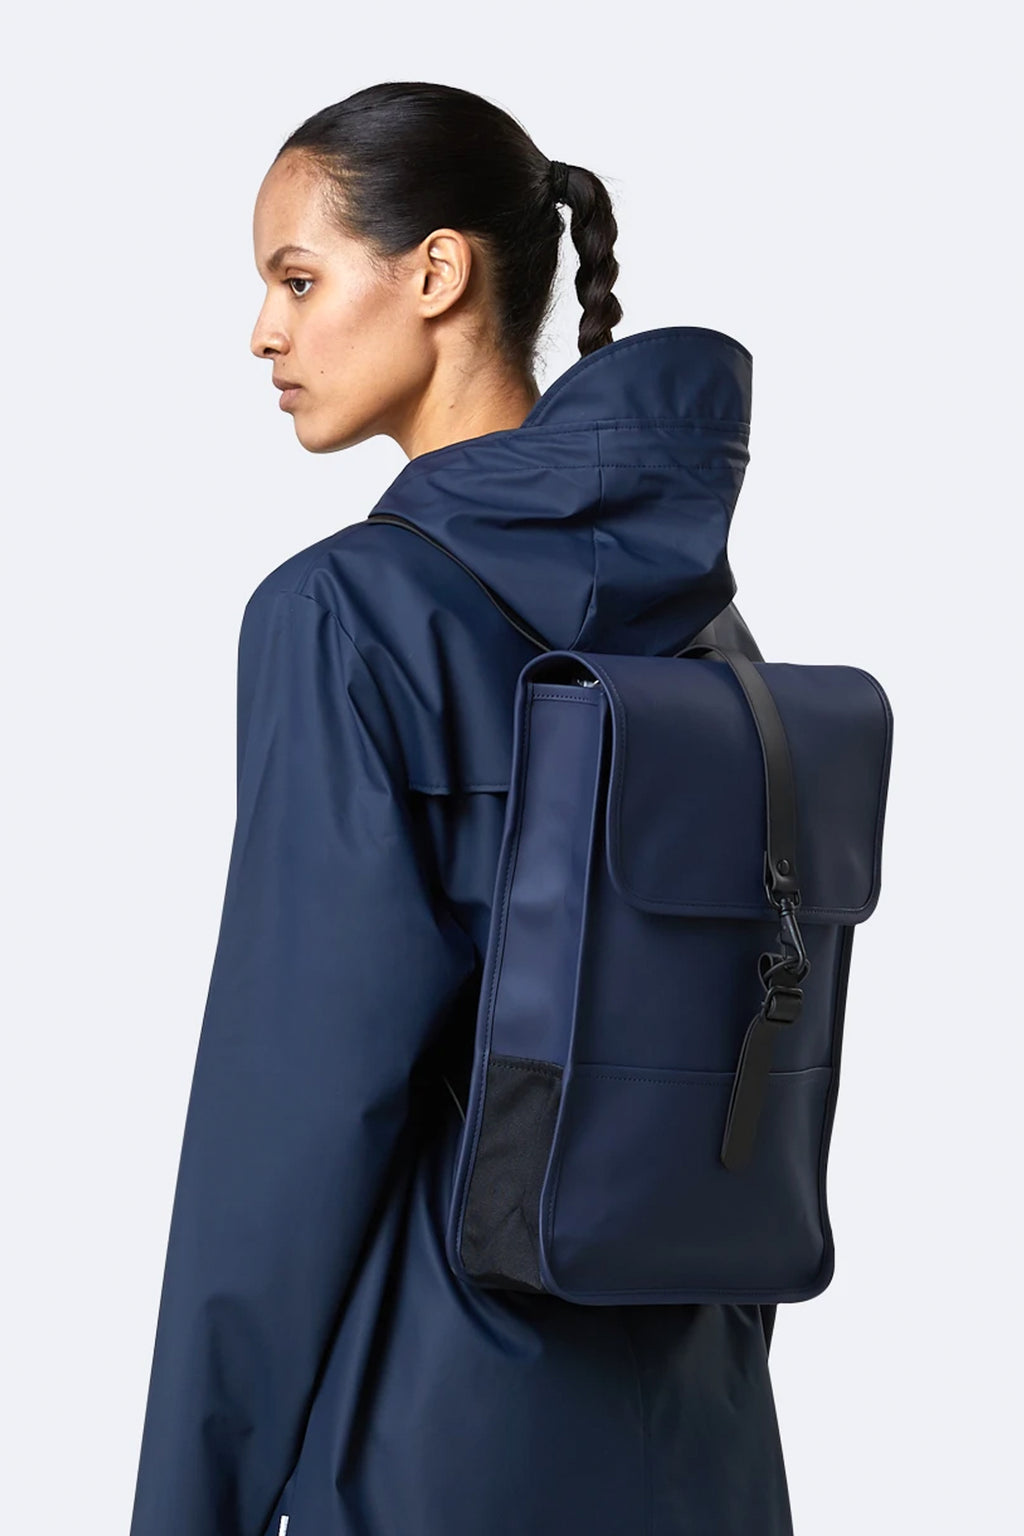 Rains Blue Mini Backpack - The Mercantile London